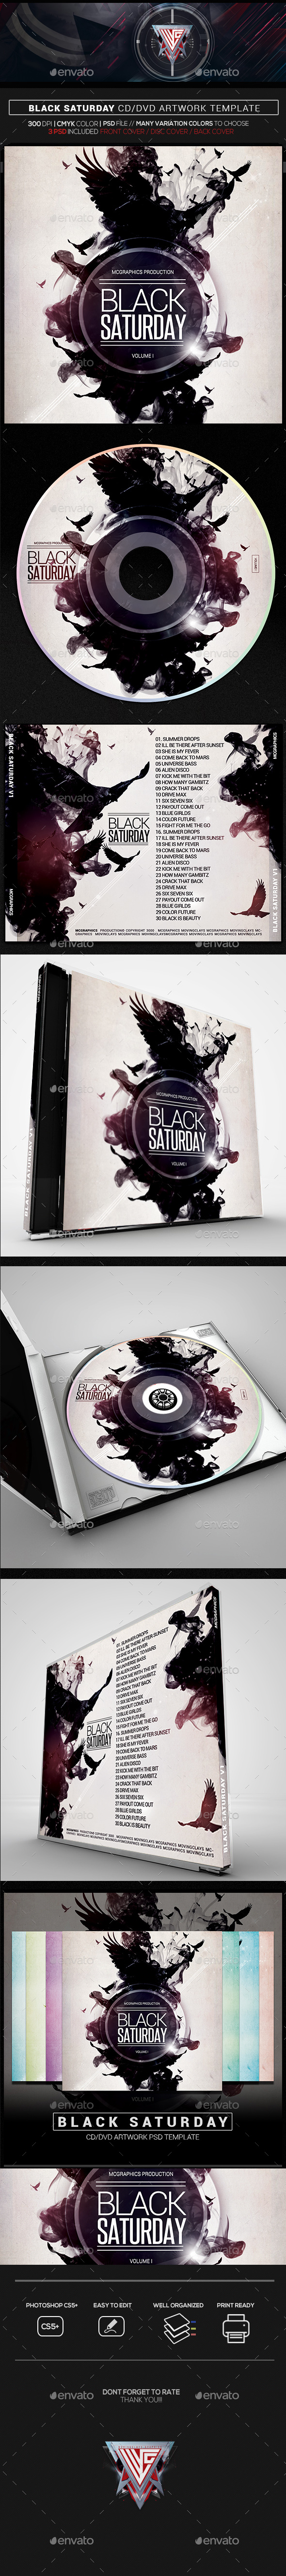 Black Saturday Music CD/DVD Template - CD & DVD Artwork Print Templates